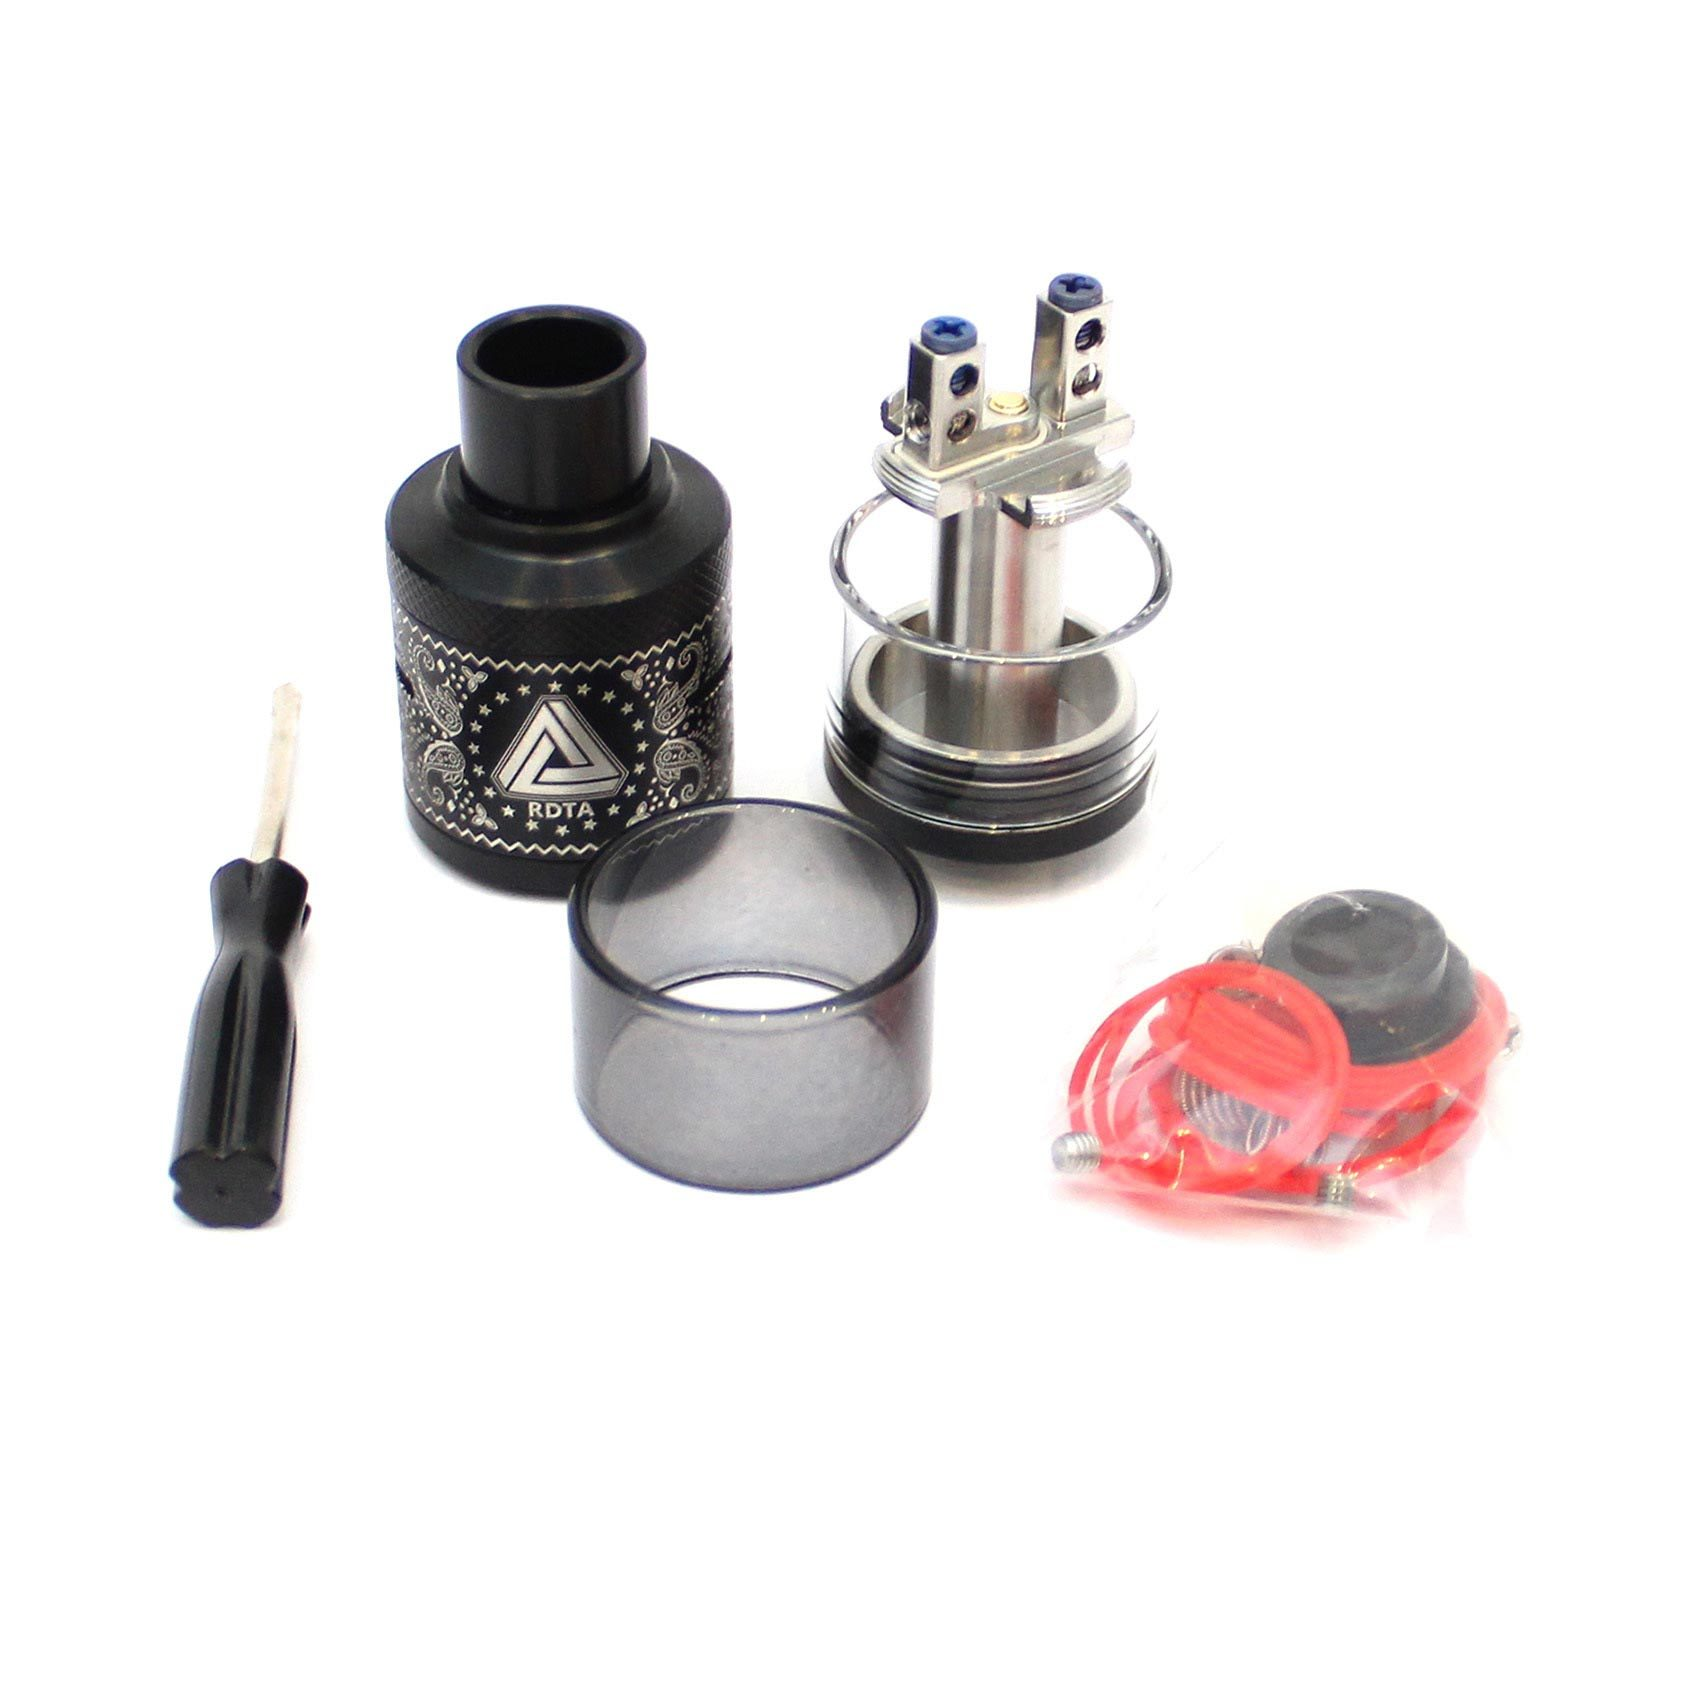 Дрипка Limitless Plus RDTA (Authentic) набор